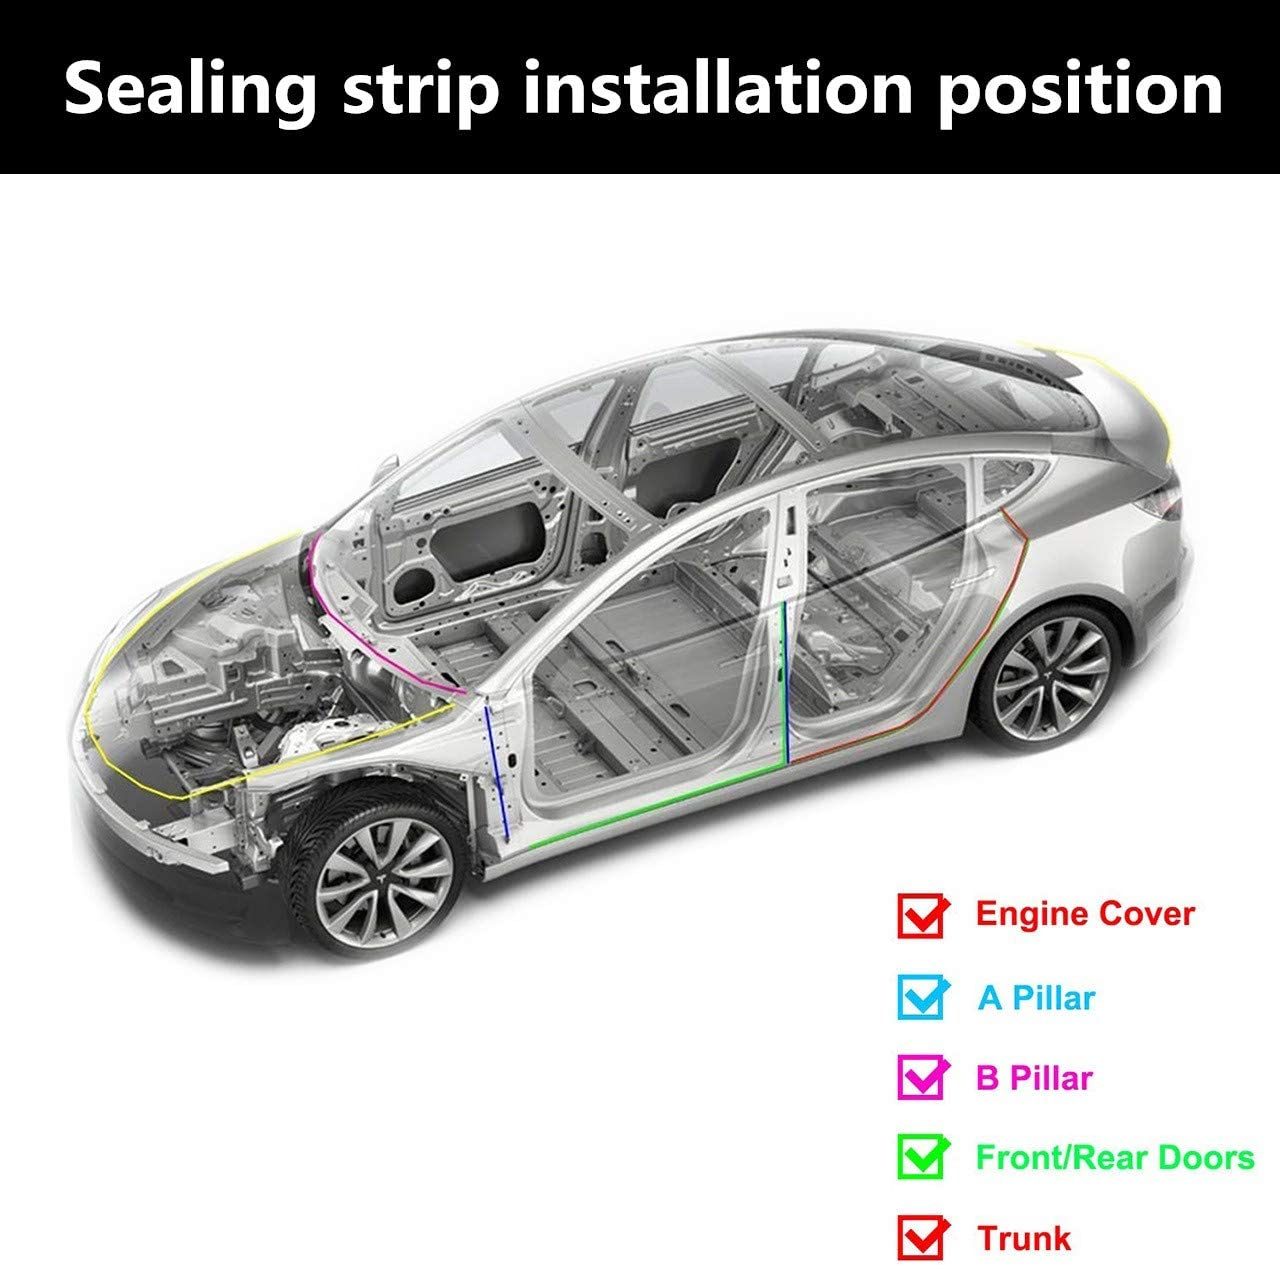 TONGXU Kit of 11 Pieces Door Seal for Car Model 3 Full Strip Seal for Cars Self-Adhesive Rubber Gaskets for Soundproofing Easy Installation Protection against Wind Water Noise